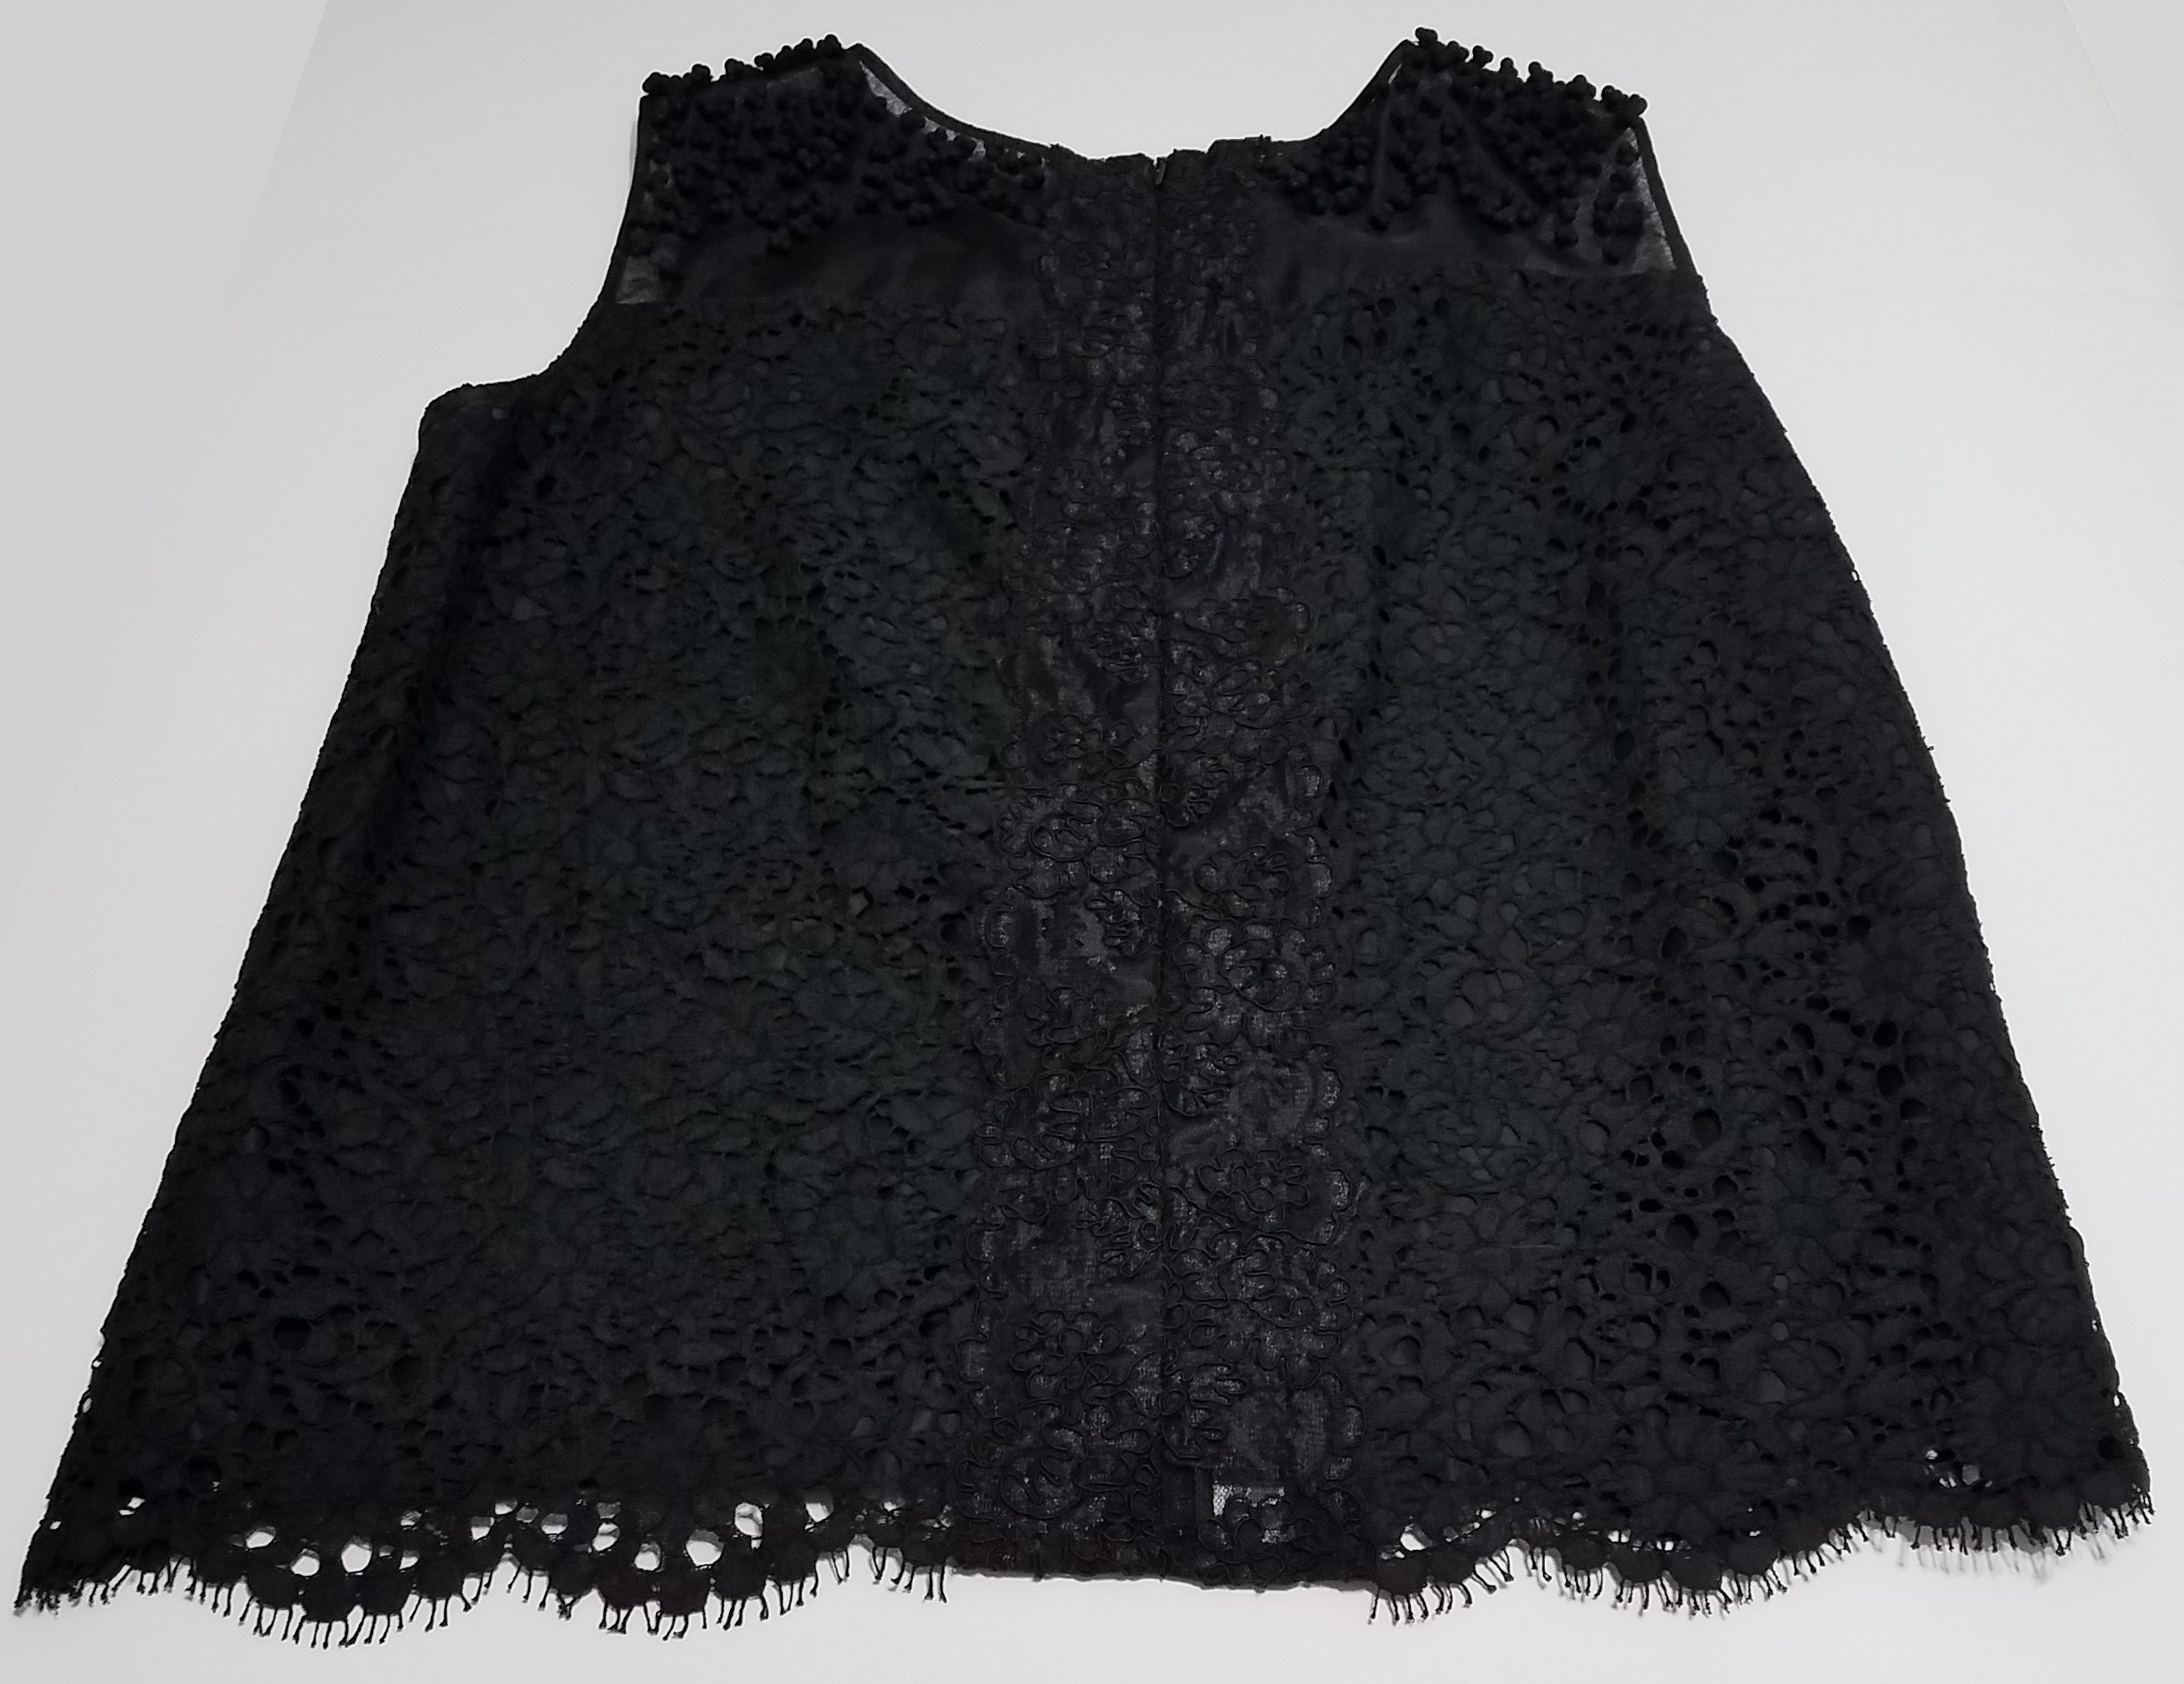 ERDEM Black Floral Lace Sleeveless Scalloped Hem Cotton Silk Blouse Top UK10 6